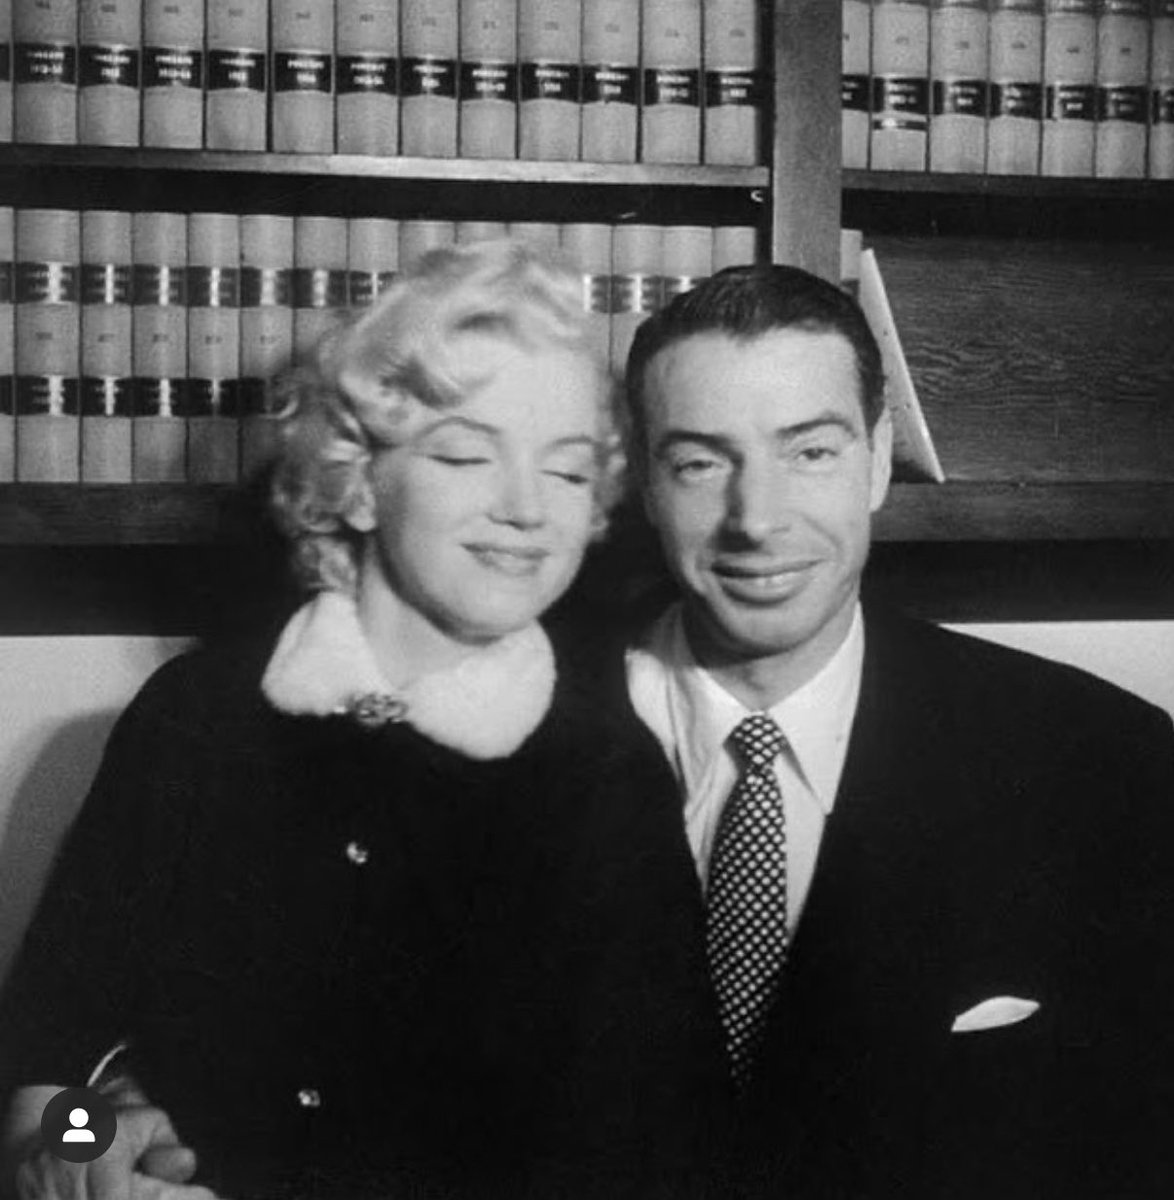 "⁦NY @Yankees⁩ great Joe DiMaggio married Marilyn Monroe on this date in 1954. I met him at a baggage carousel at National Airport in 1989 during the ⁦@SFGiants⁩-⁦@Athletics⁩ World Series and asked him who he liked. ""I don't give a damn about either team,""he said"